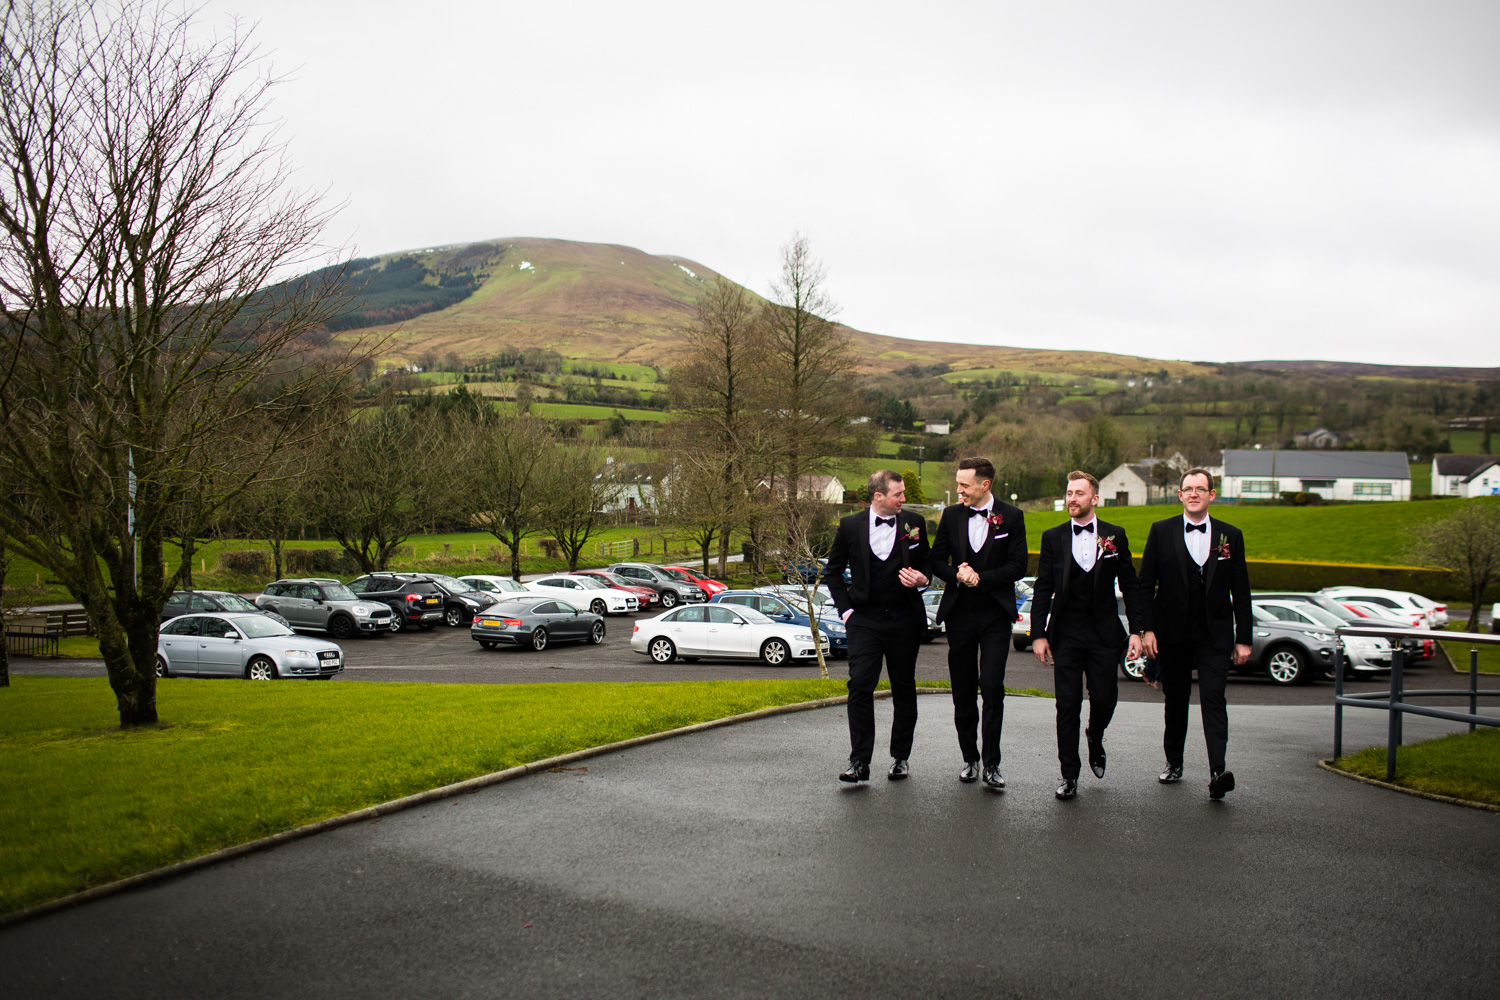 Mark_Barnes_Northern_Ireland_wedding_photographer_Innishowen_Gateway_Donegal_Wedding_photography_Donegal_wedding_photographer-15.jpg